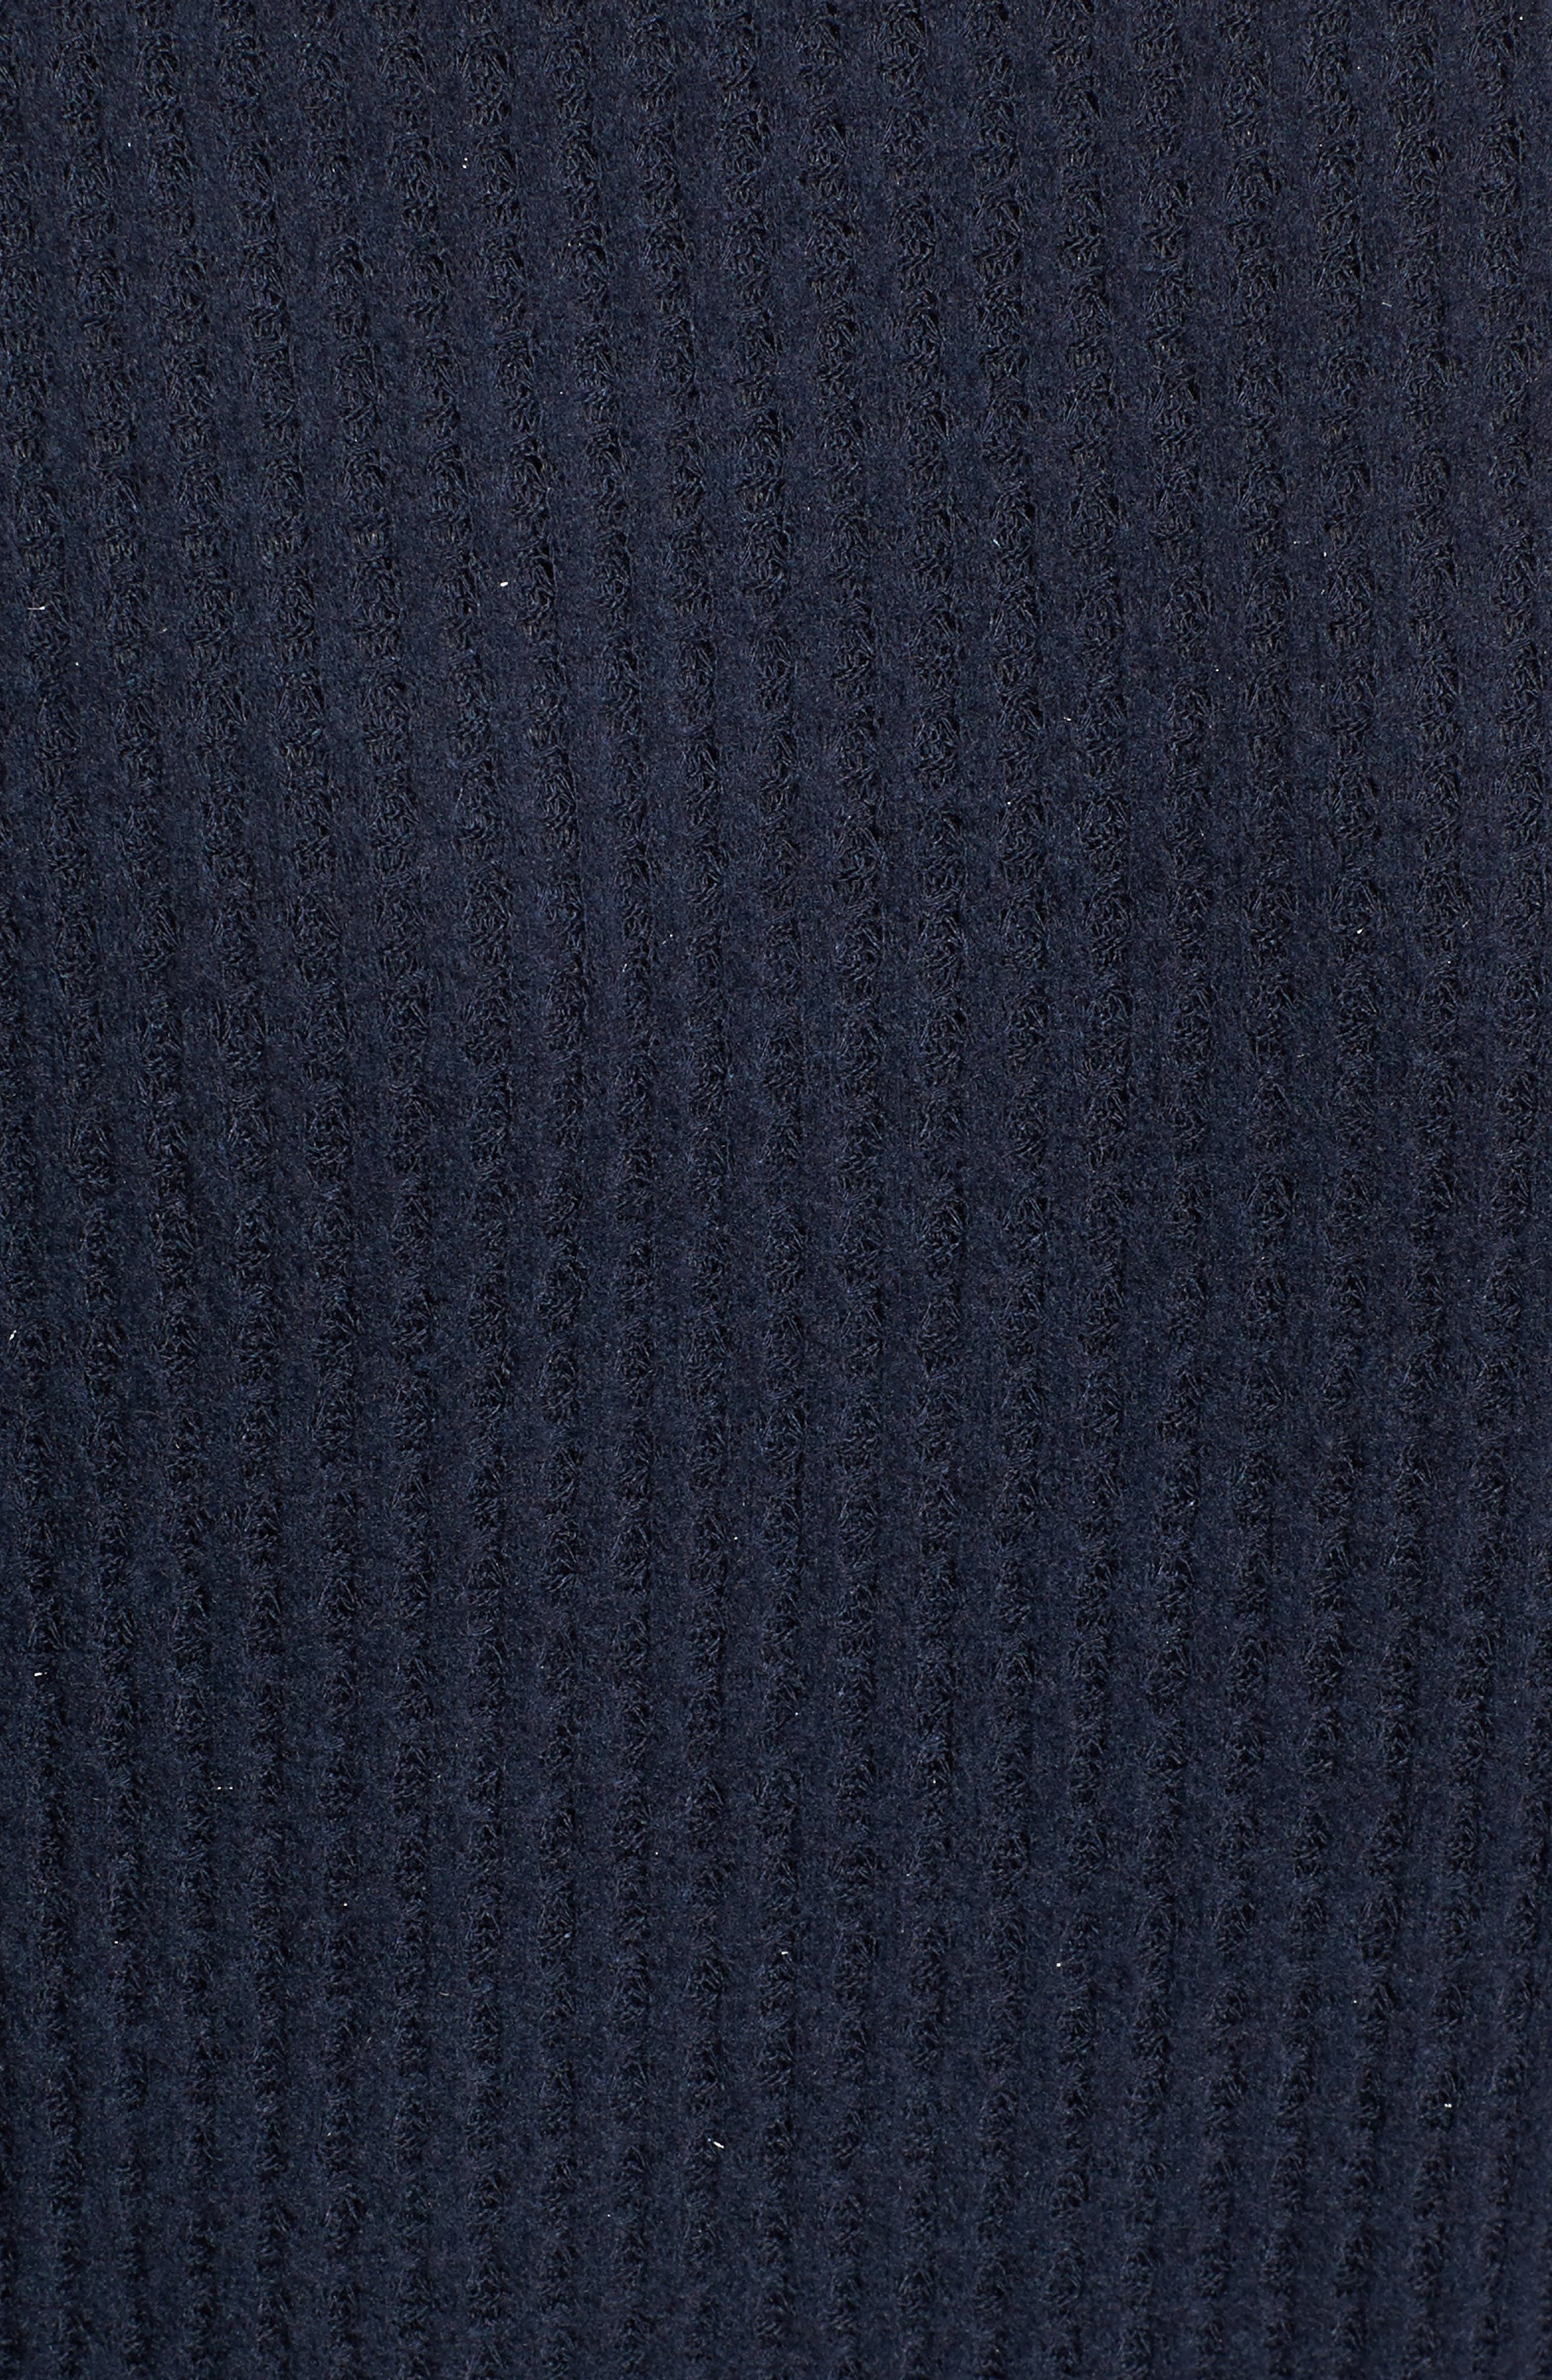 Wrap Sweater,                             Alternate thumbnail 5, color,                             Navy